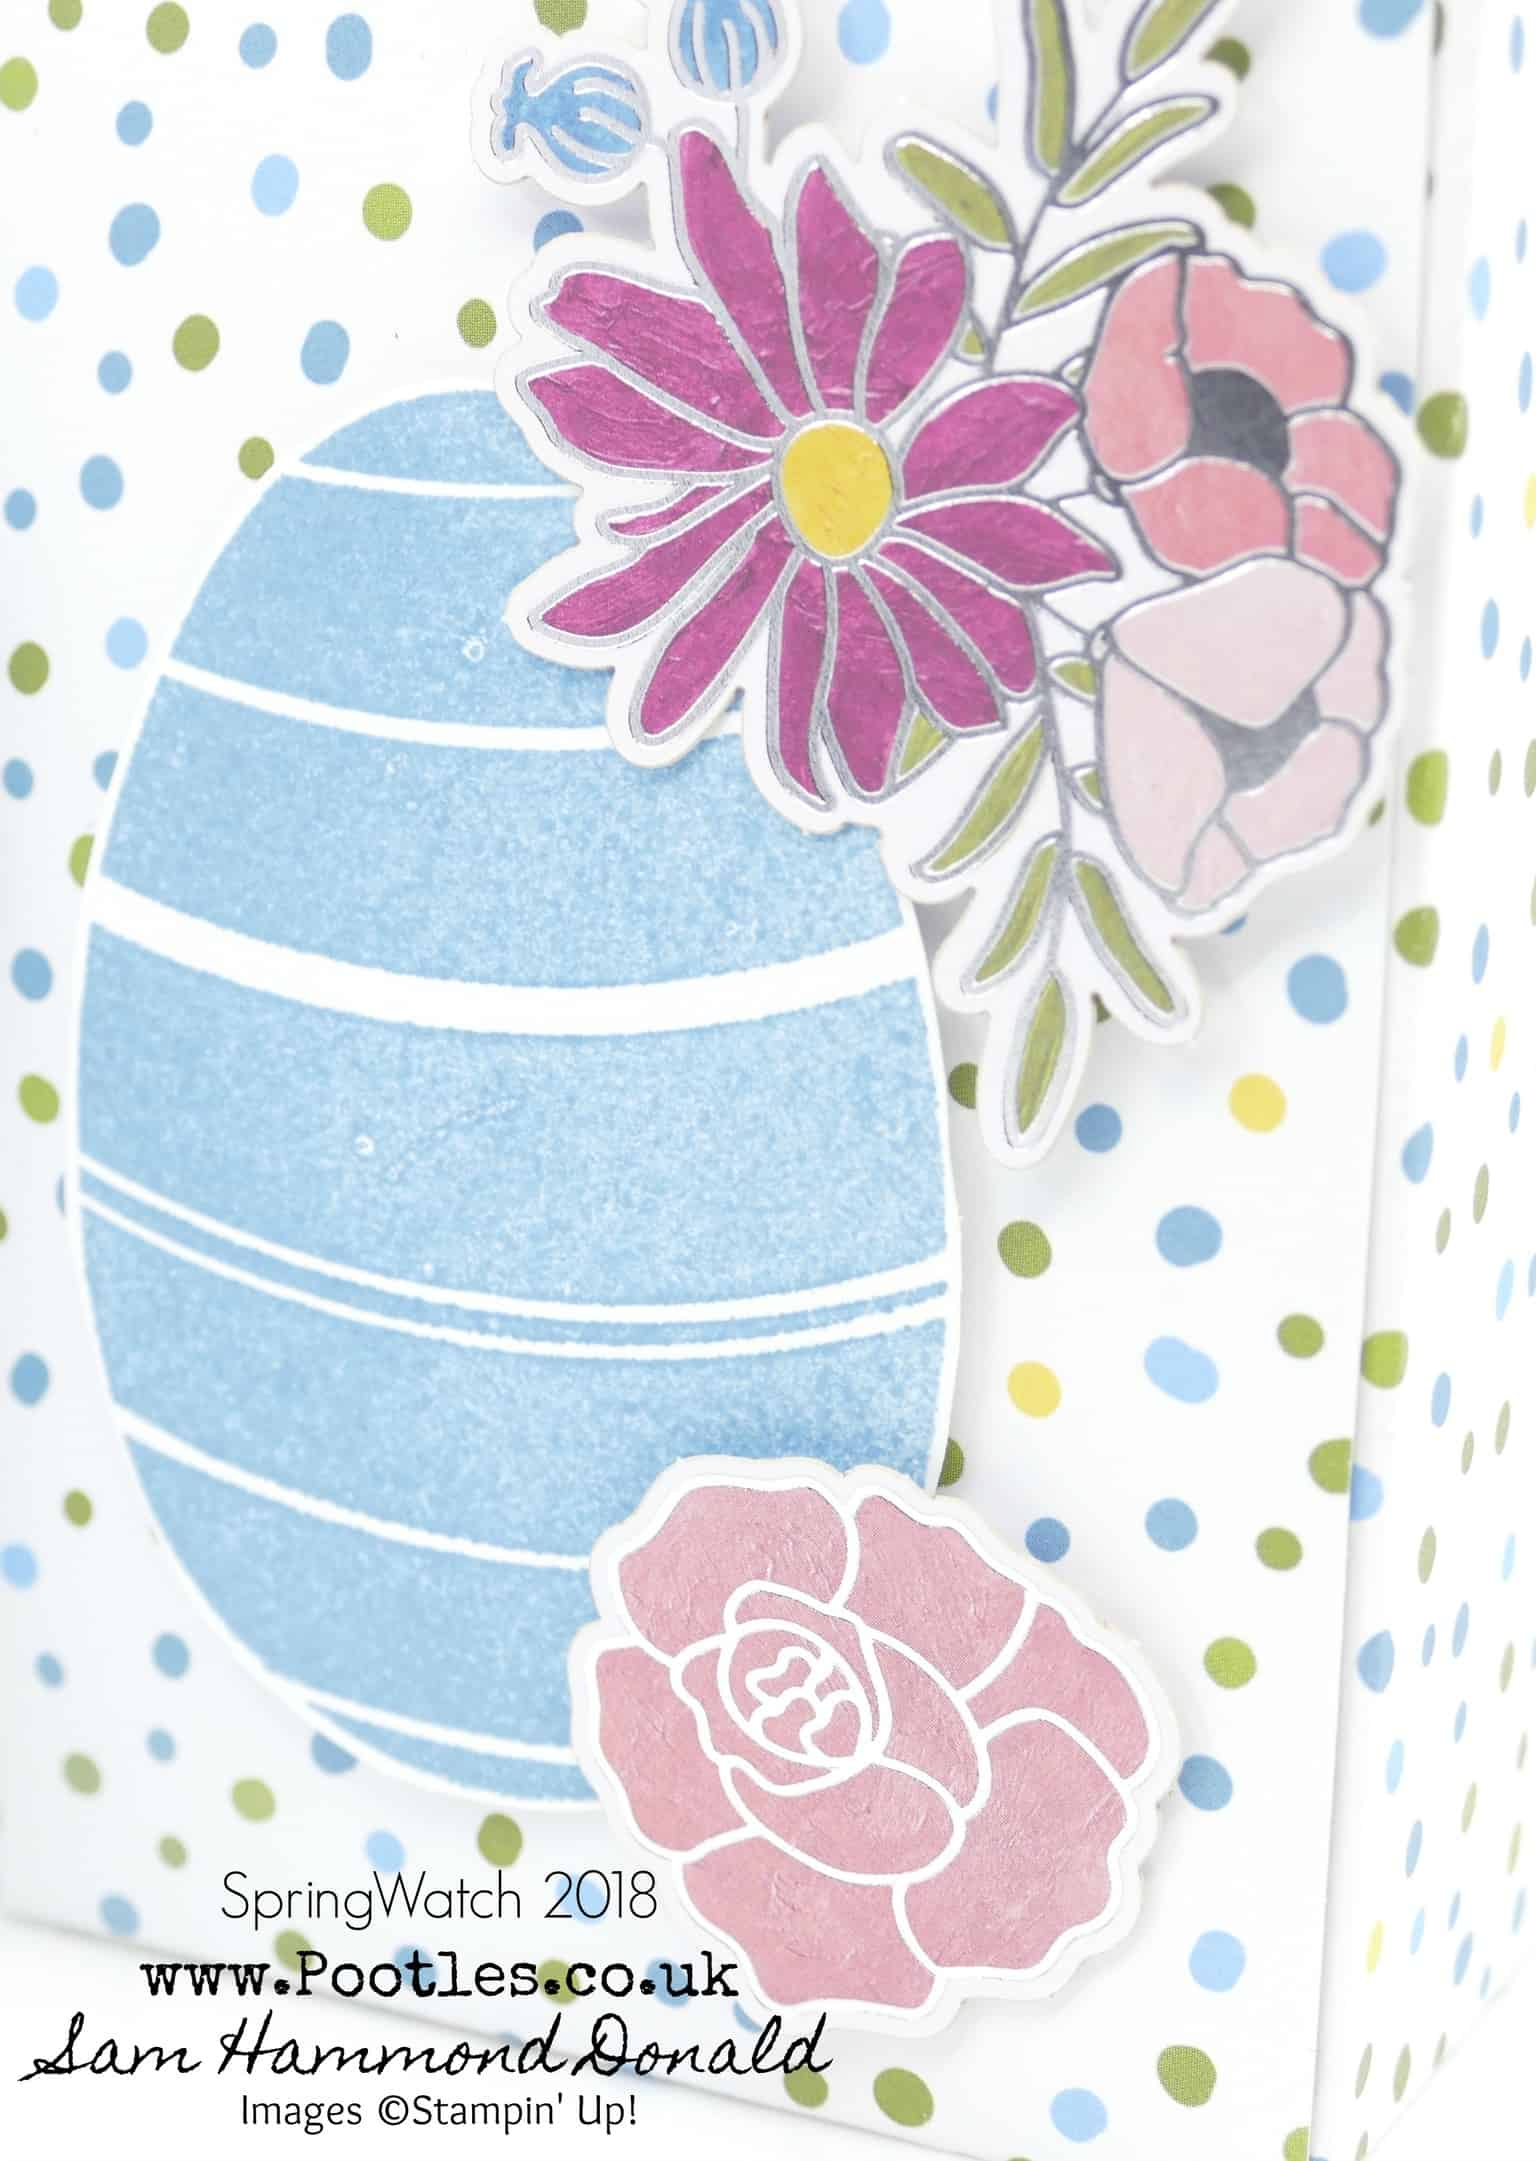 SpringWatch 2018 Happy Easter Yankee Candle Egg Punch Board Box Tutorial